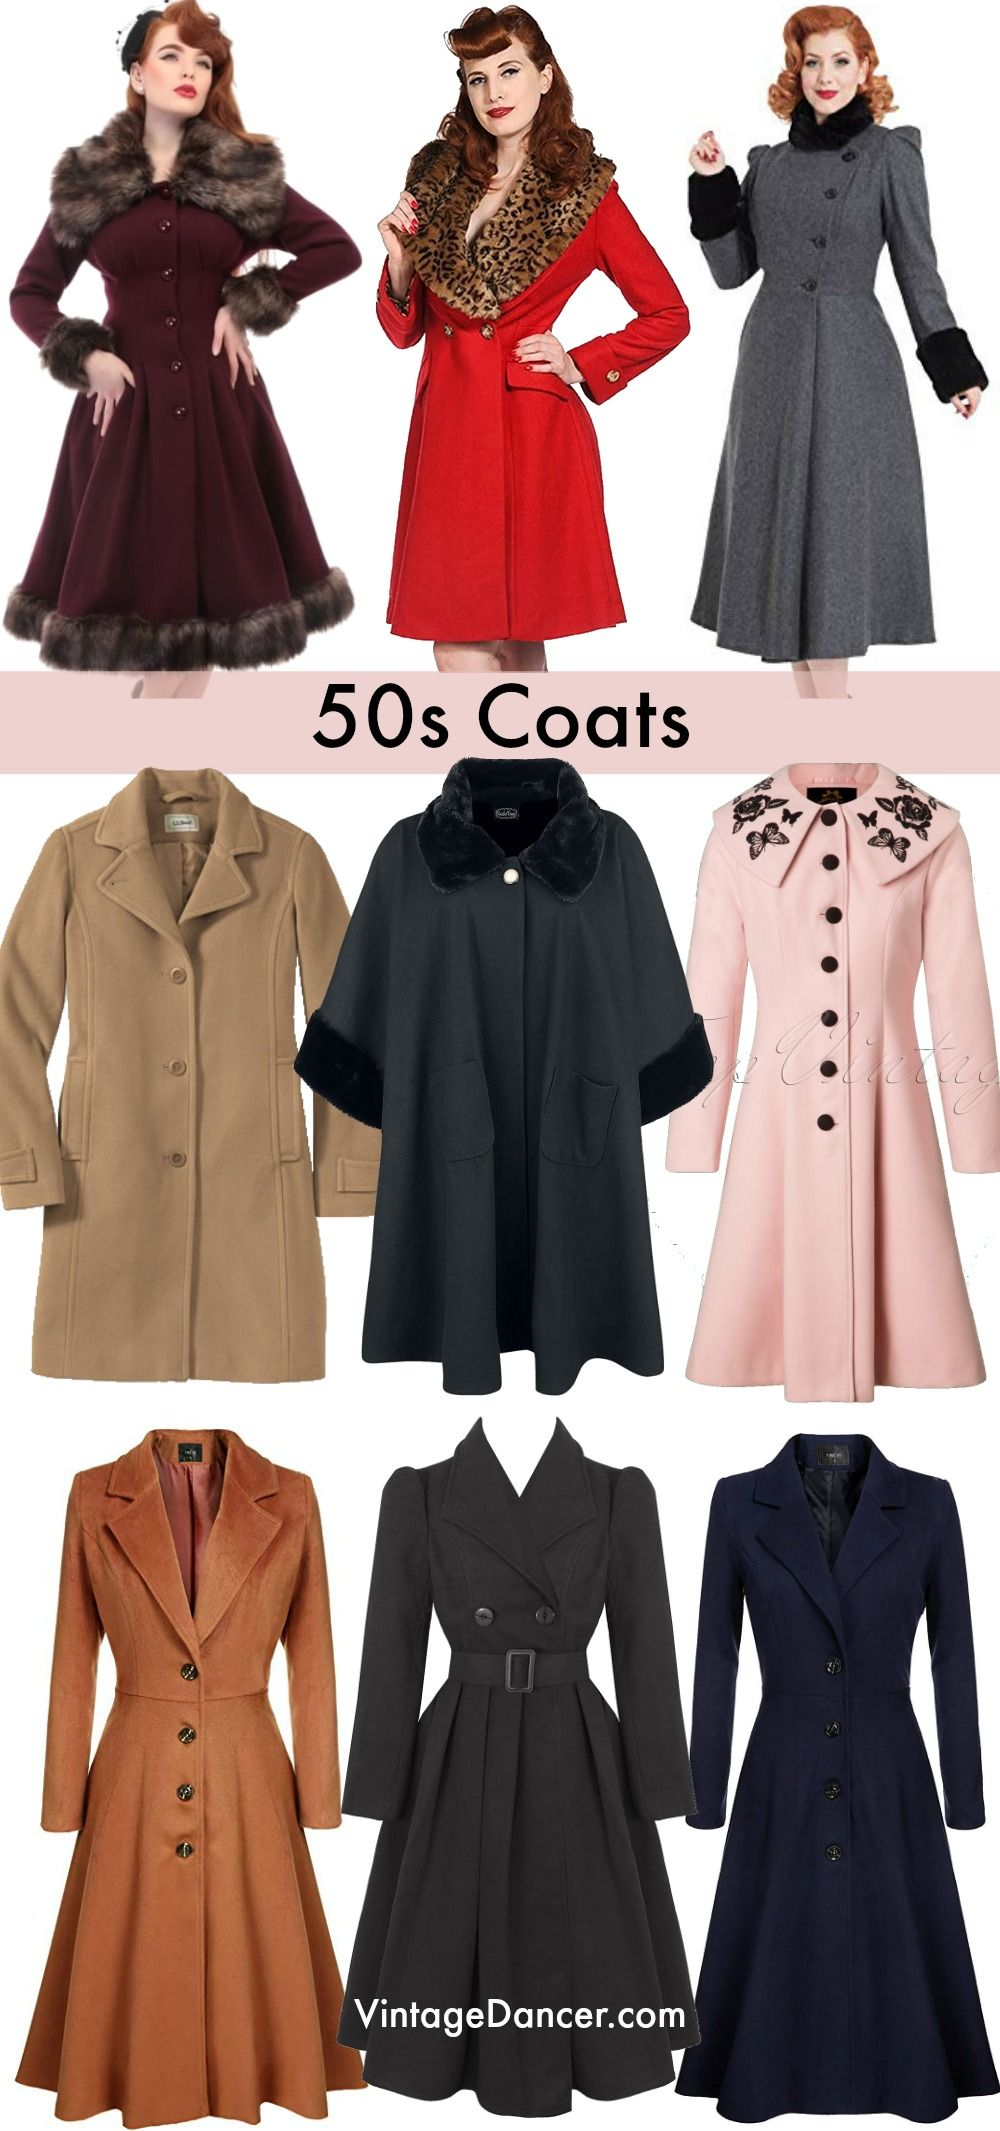 95803def53b3 1950s Jackets and Coats in 2019